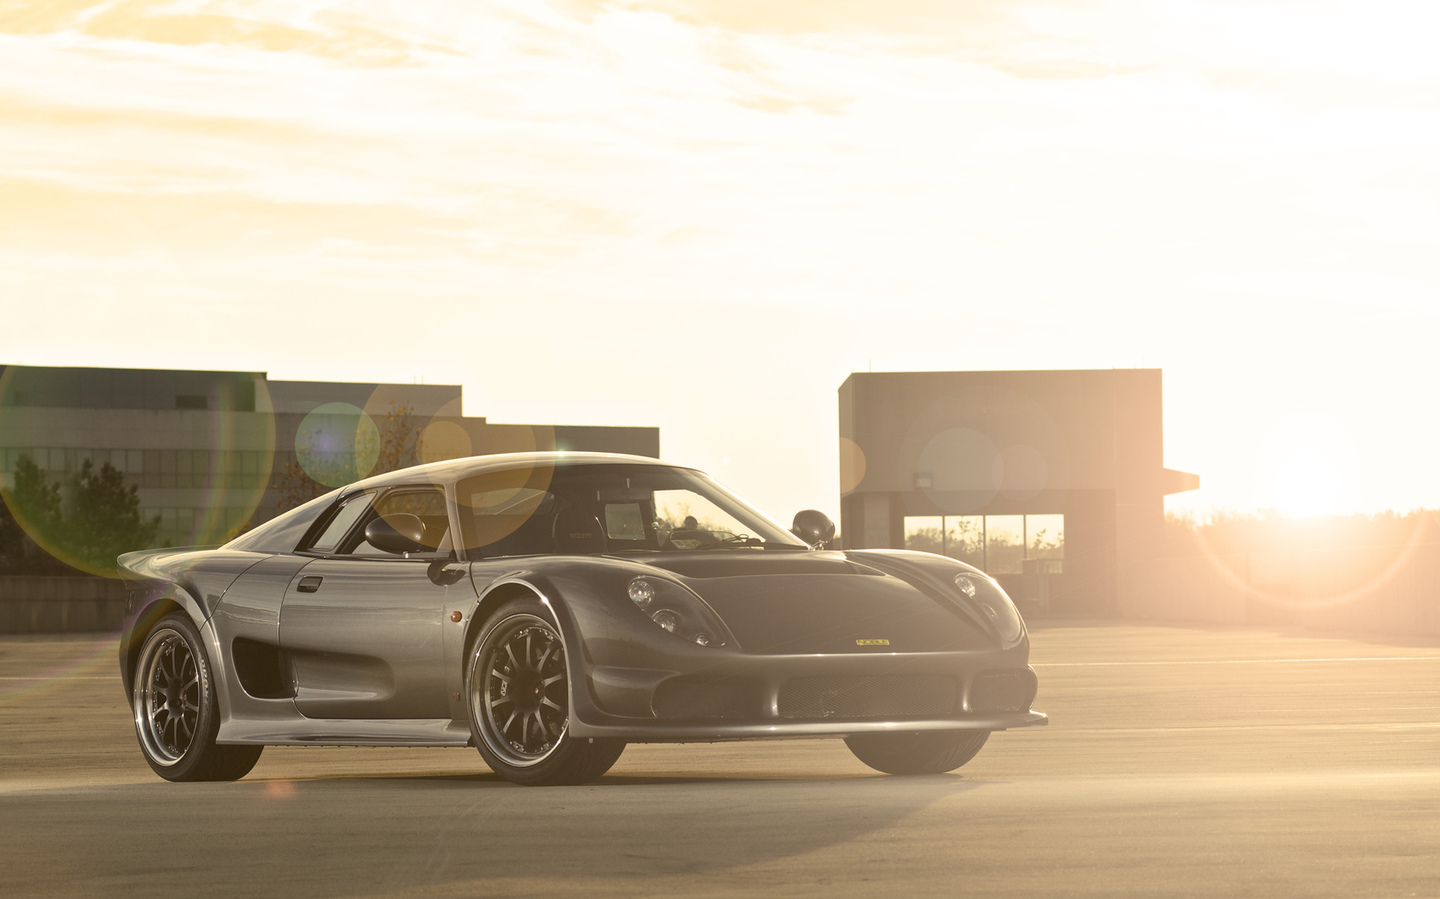 noble, m12 gto 3r, auto wallpapers, авто фото, cars, авто обои, тачки